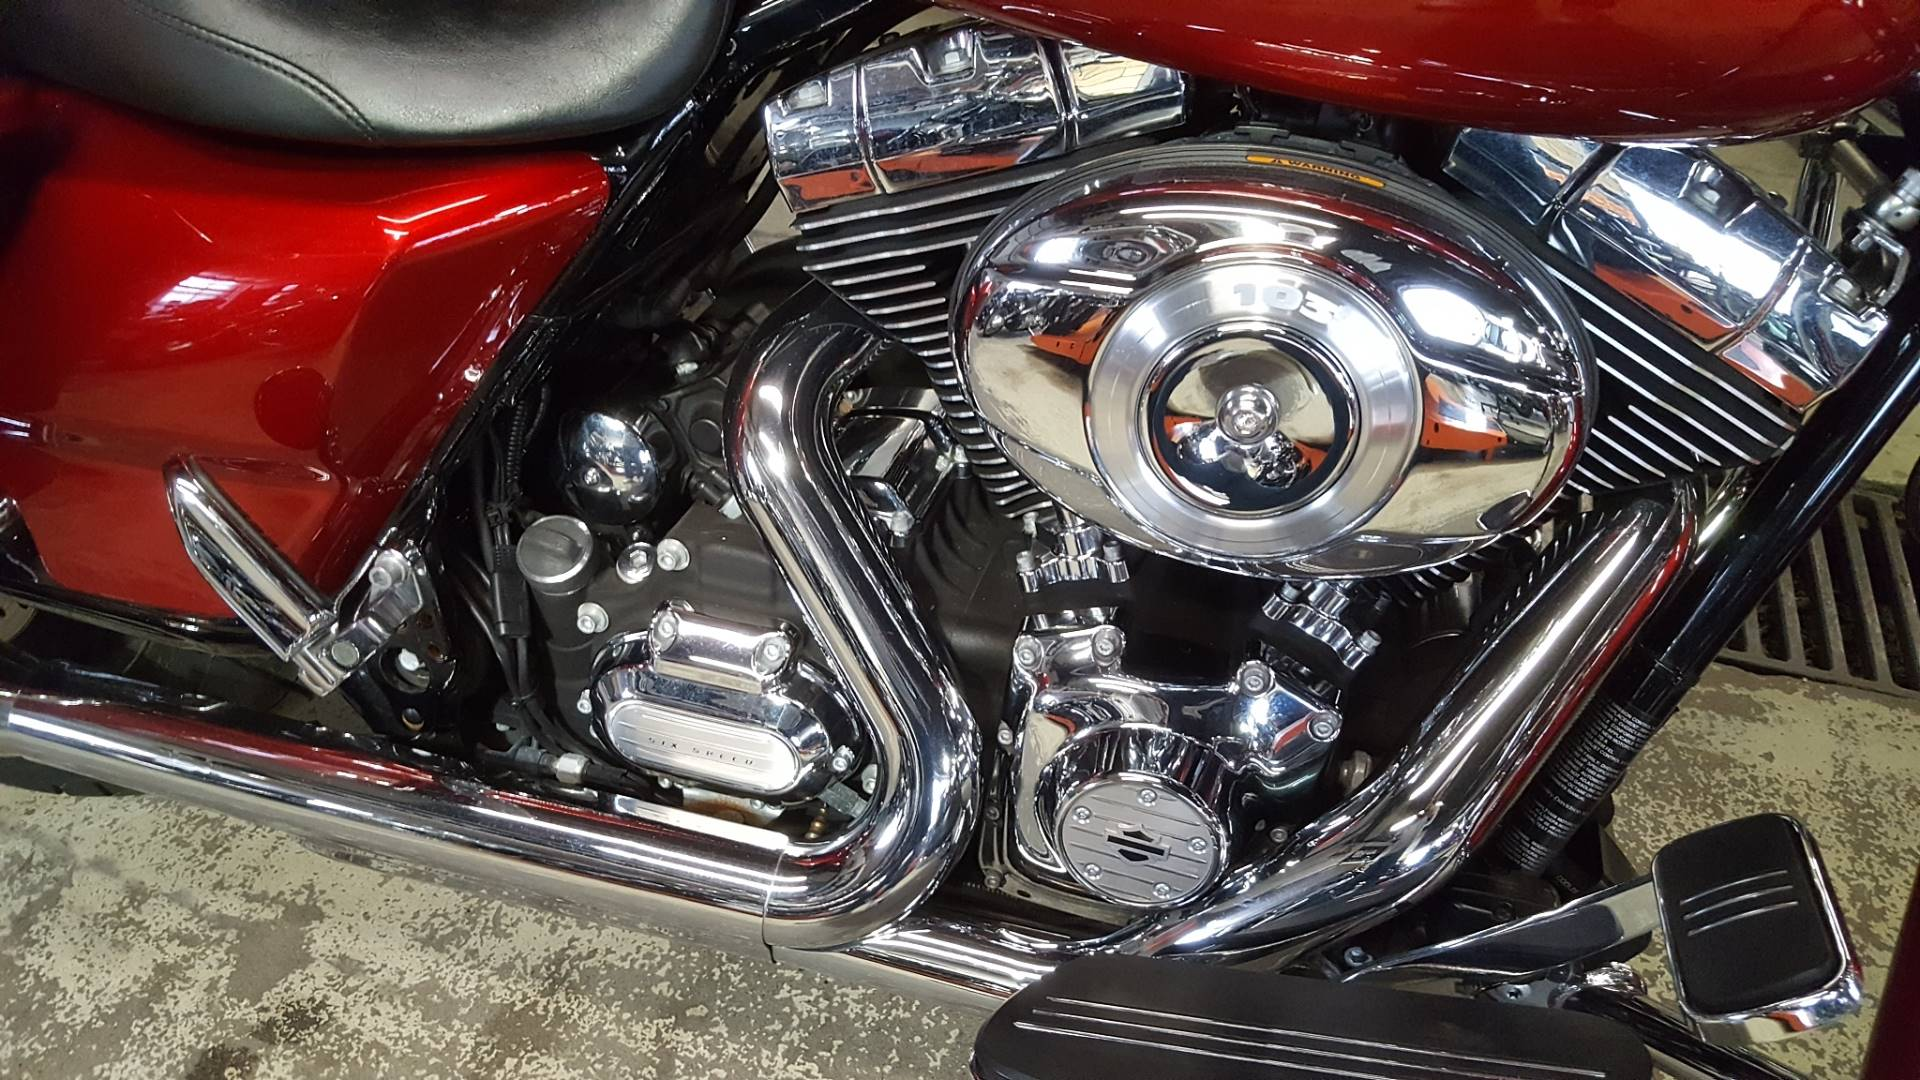 2013 Harley-Davidson Street Glide® in South Saint Paul, Minnesota